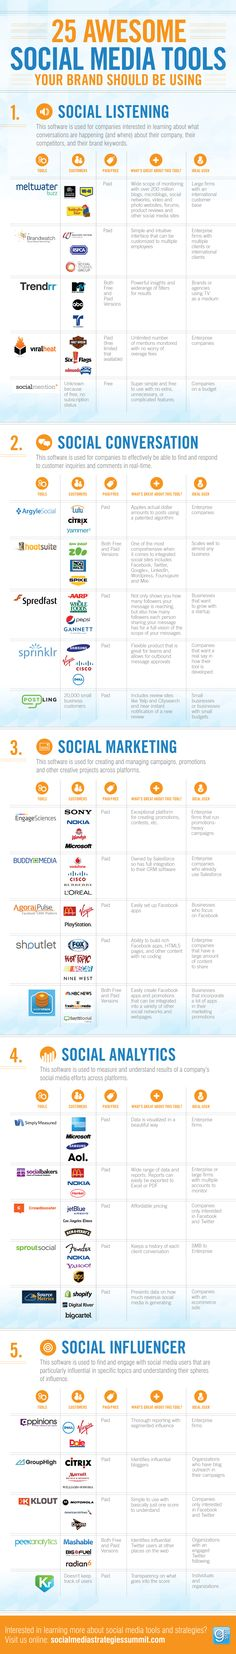 25 Social Media Tools Reviewed [INFOGRAPHIC] | Social Media Today